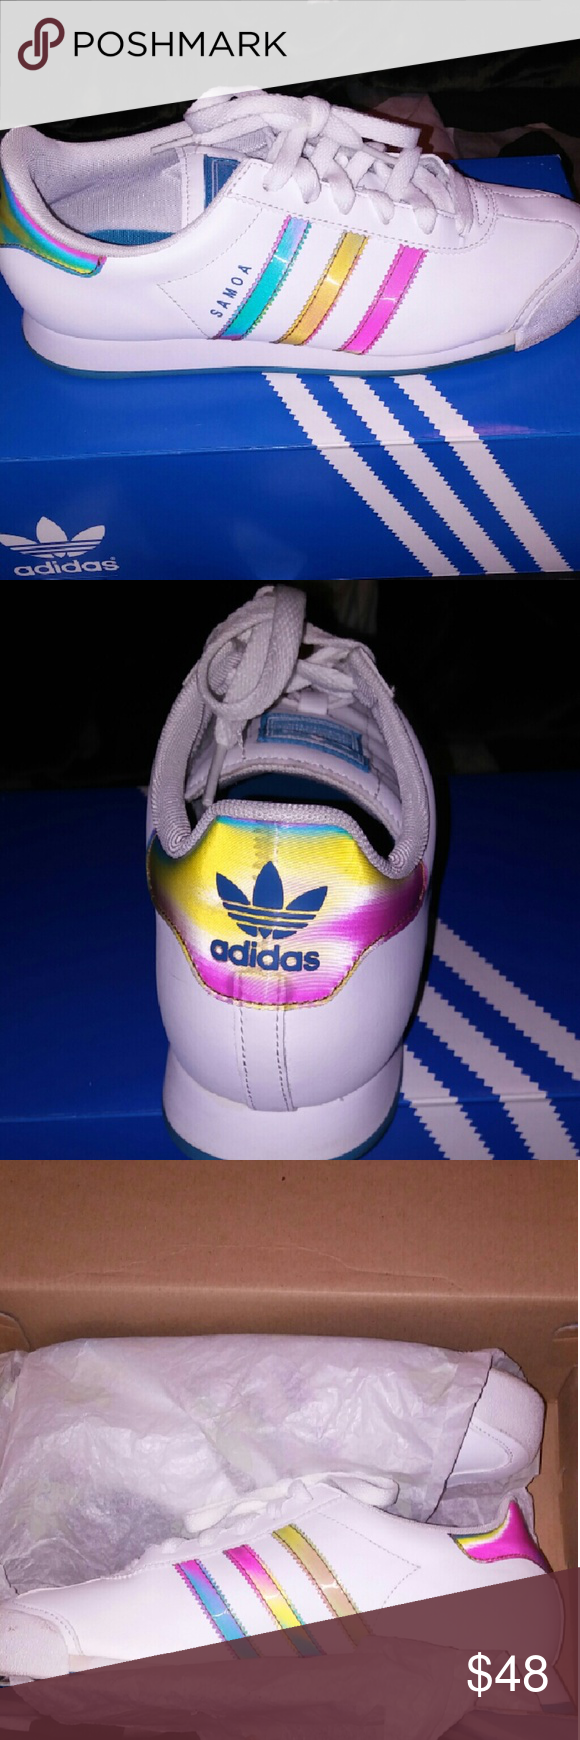 Adidas samoas Like new. Worn once for an hr if not less. Adidas Shoes Sneakers